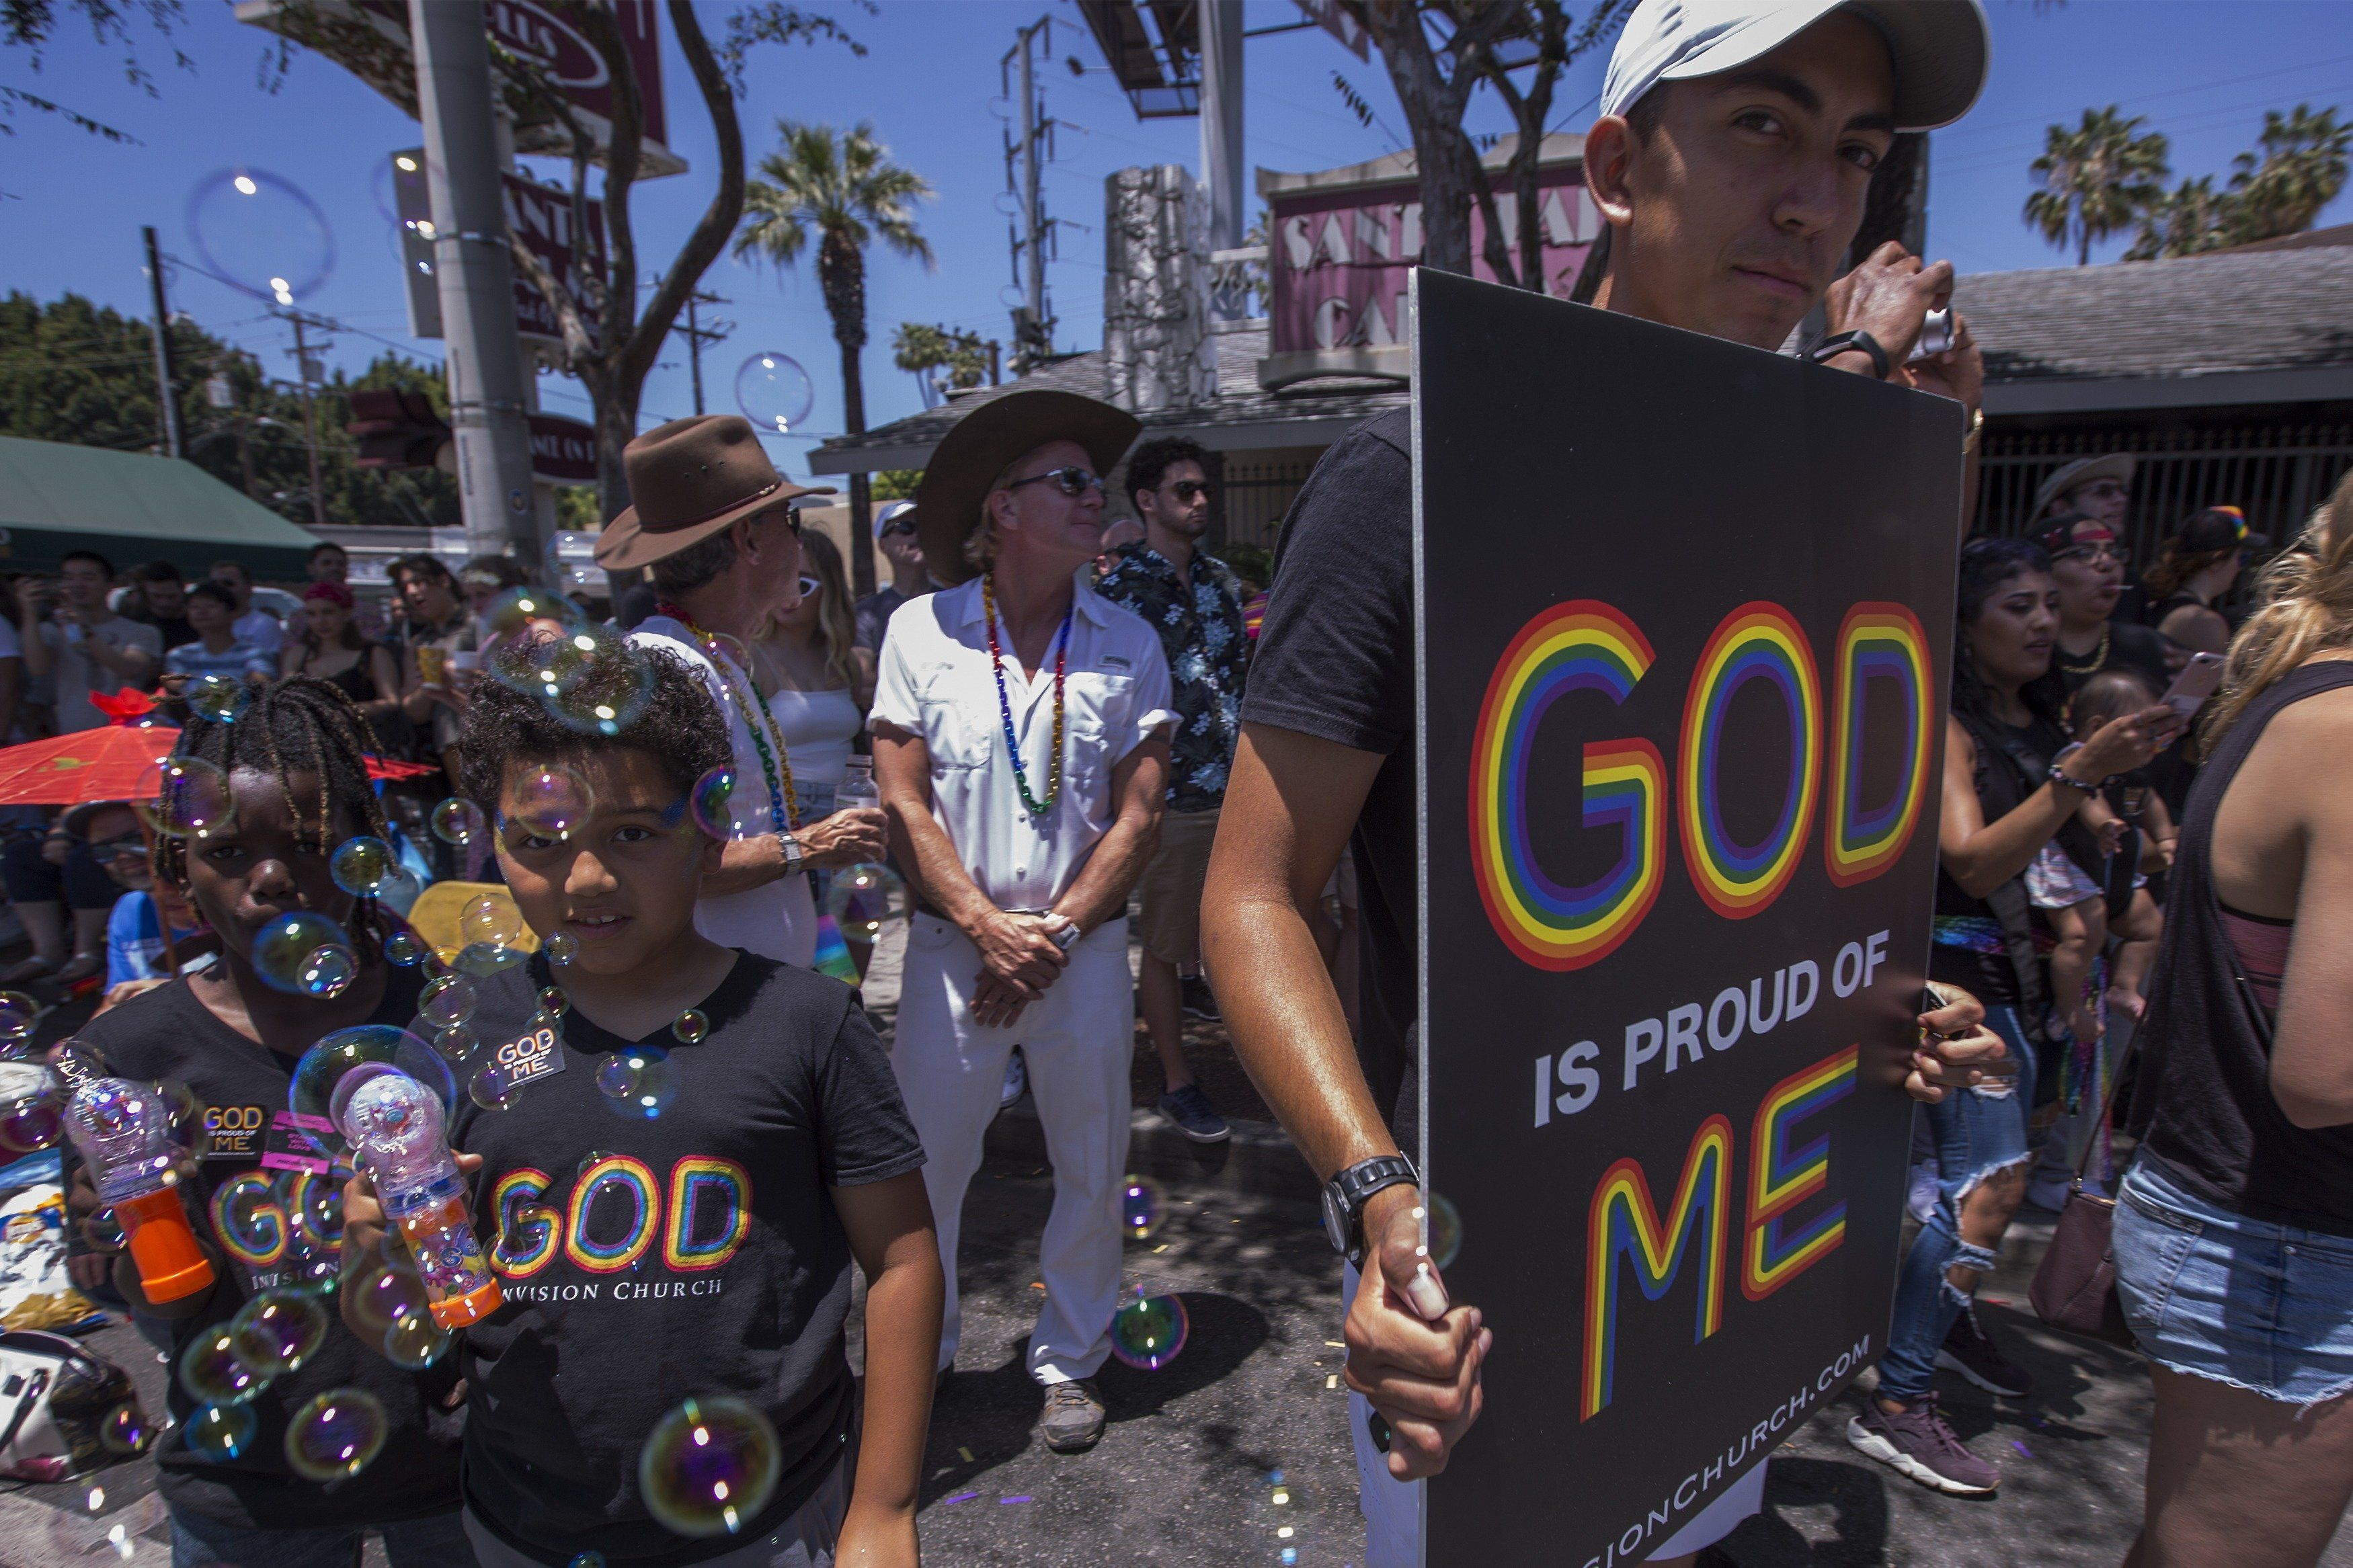 LOS ANGELES, CA - JUNE 10: A supporter of InVision Church Los Angeles watches the 48th annual LA Pride Parade on June 10, 2018, in the Hollywood section of Los Angeles and West Hollywood, California. The annual gay rights event returns to its customary format of celebration following a one-time switch to the Resist March protest against Trump administration policies. LA Pride began on June 28, 1970, exactly one year after the historic Stonewall Rebellion in New York City.  (Photo by David McNew/Getty Images)